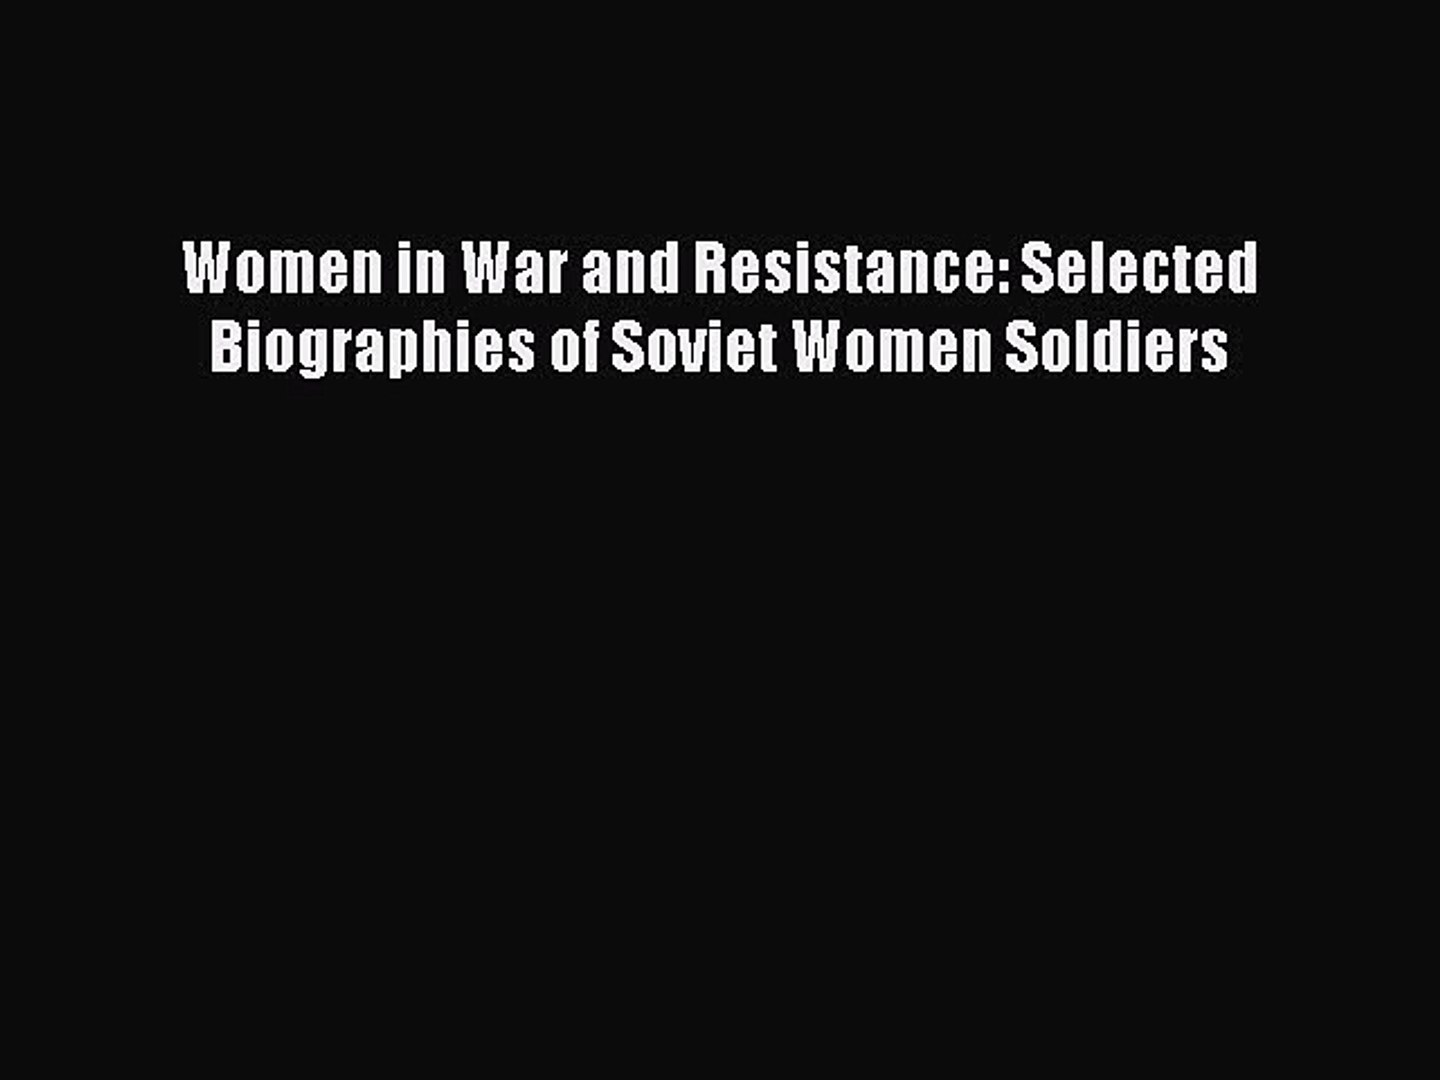 Women in War and Resistance Selected Biographies of Soviet Women Soldiers